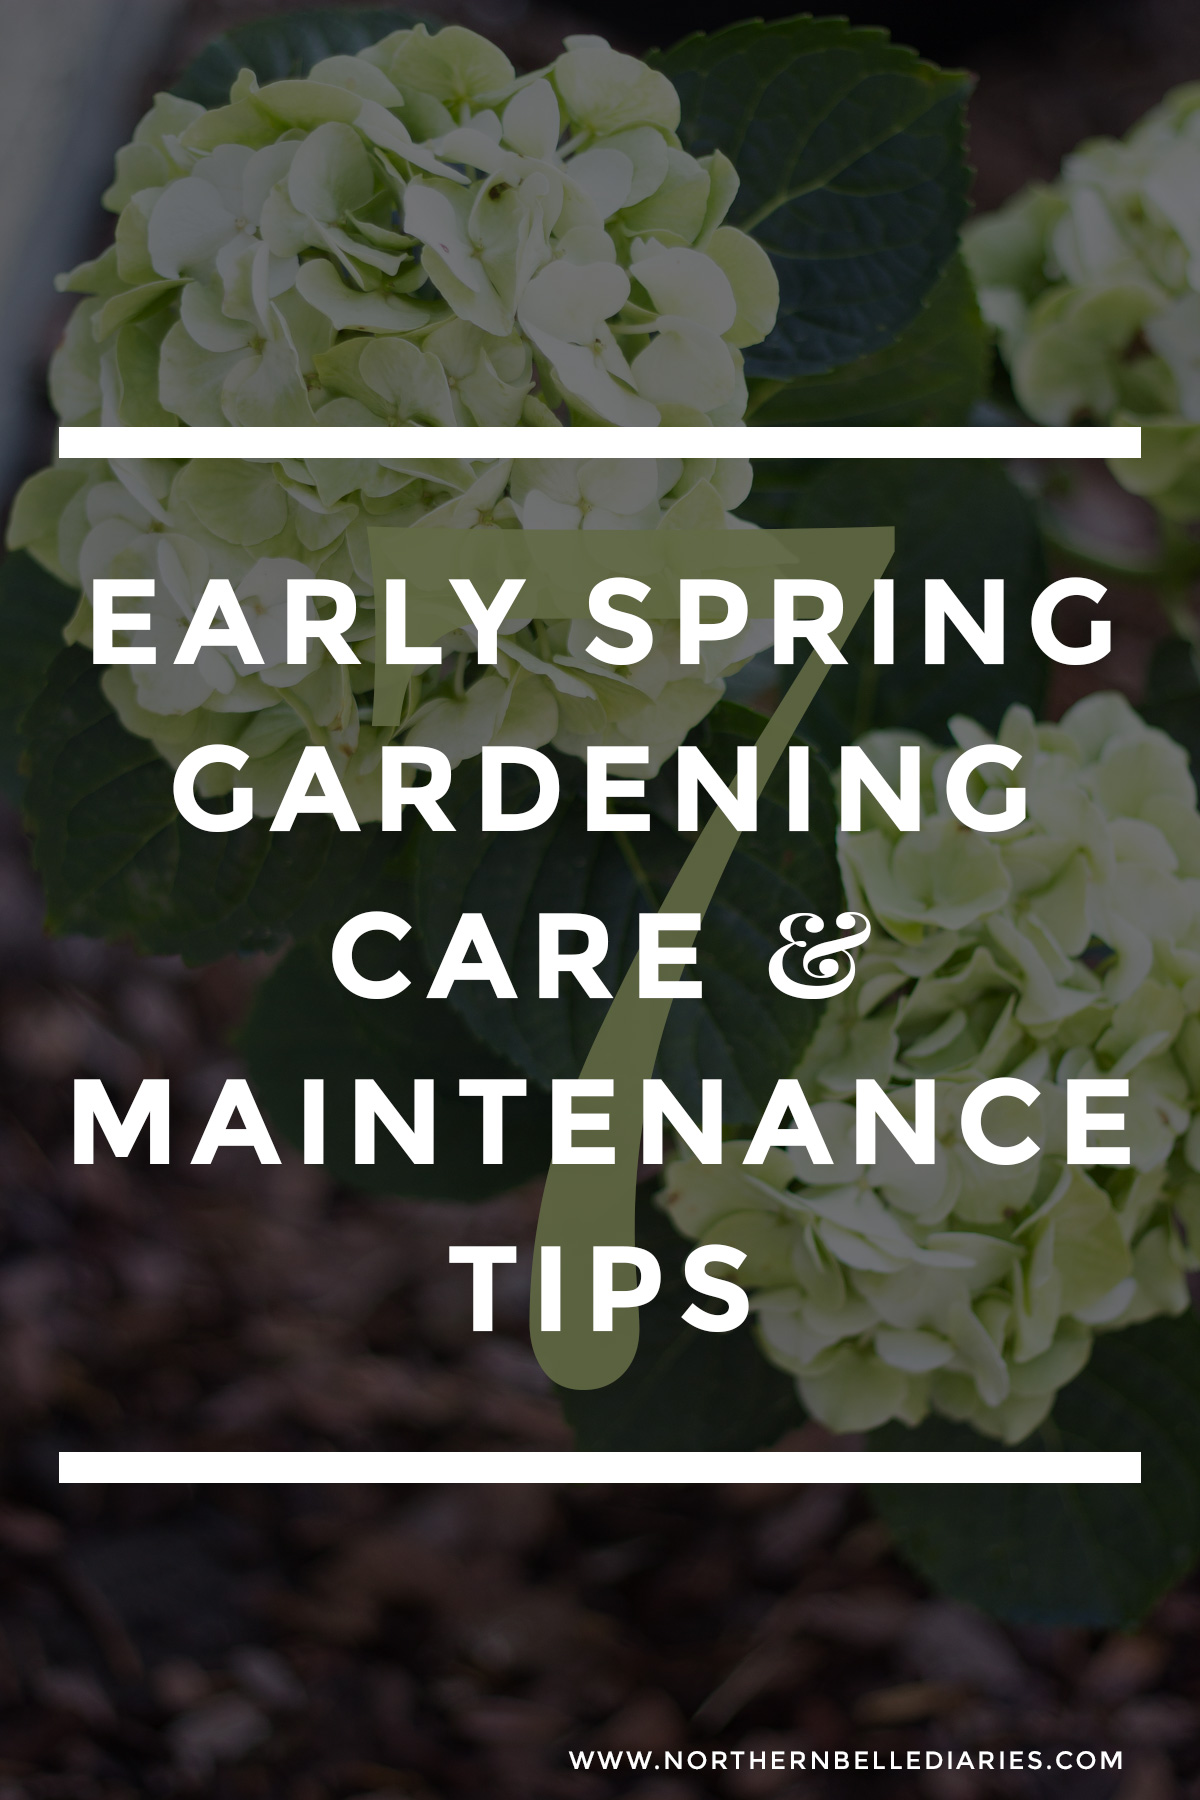 7 Early Spring Gardening Care & Maintenance Tips #LoveYourLawn #garden #gardentips #ad